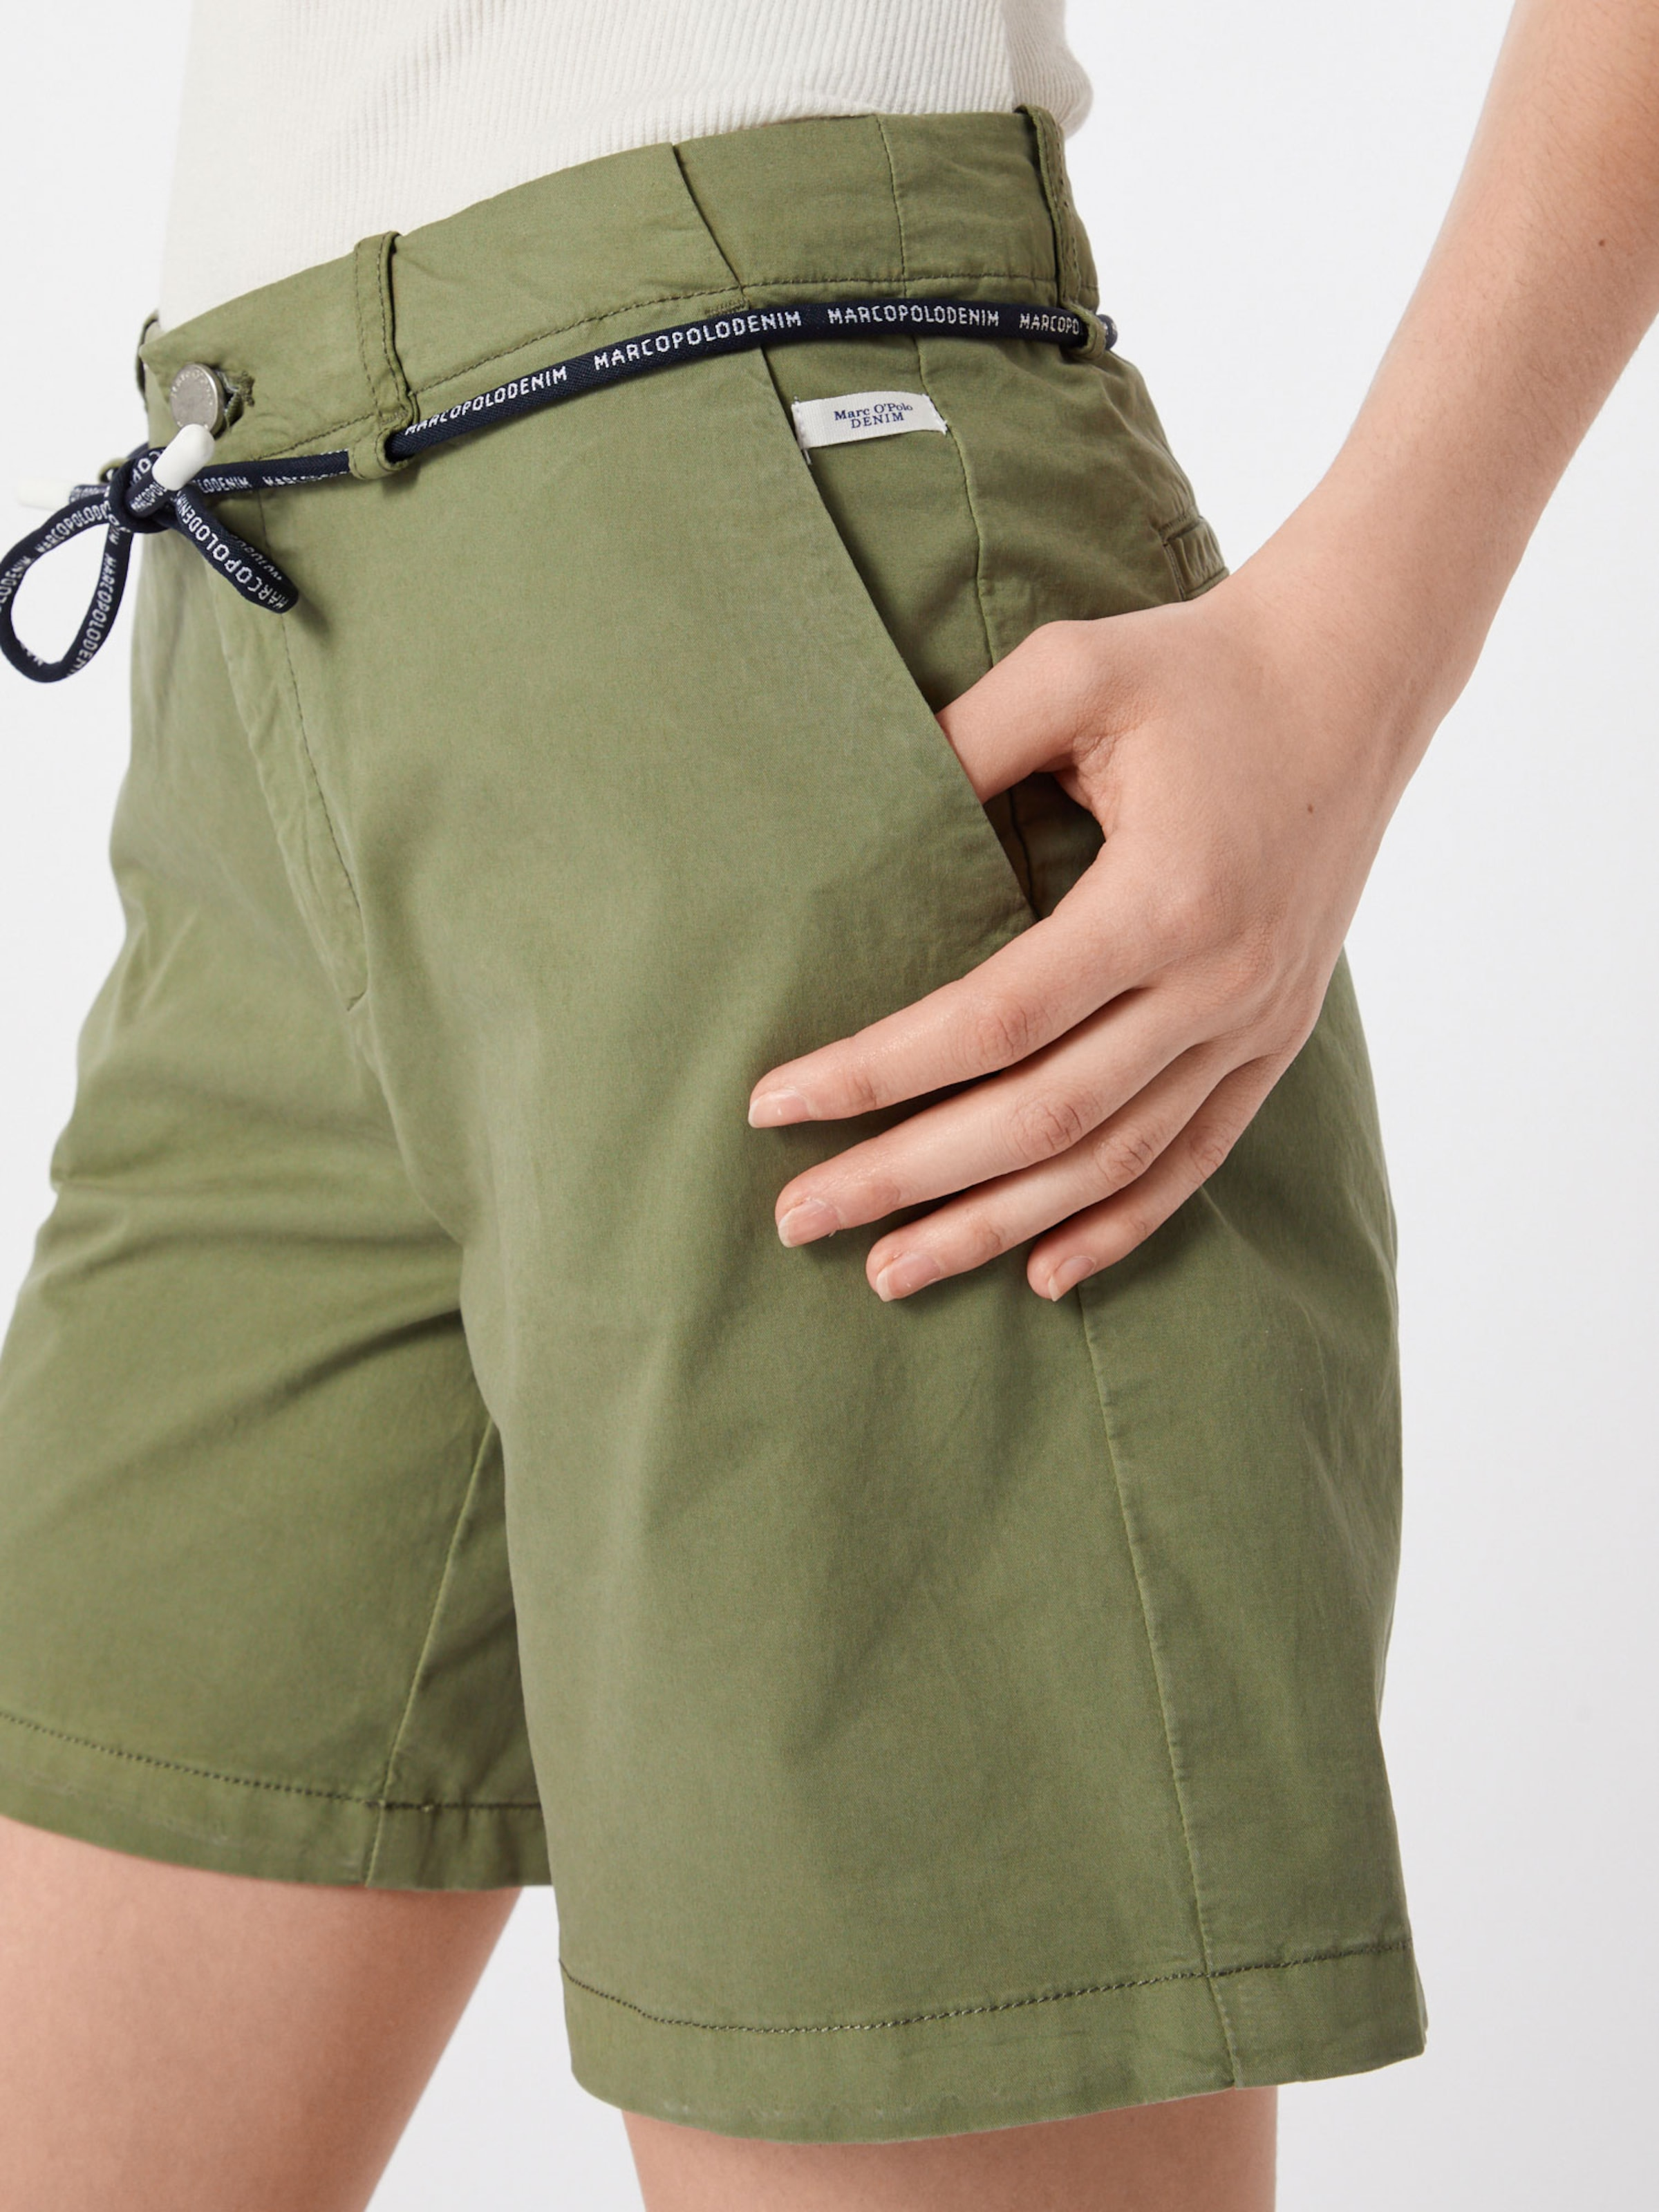 Marc Pantalon Denim Chino Olive O'polo En uZikPX